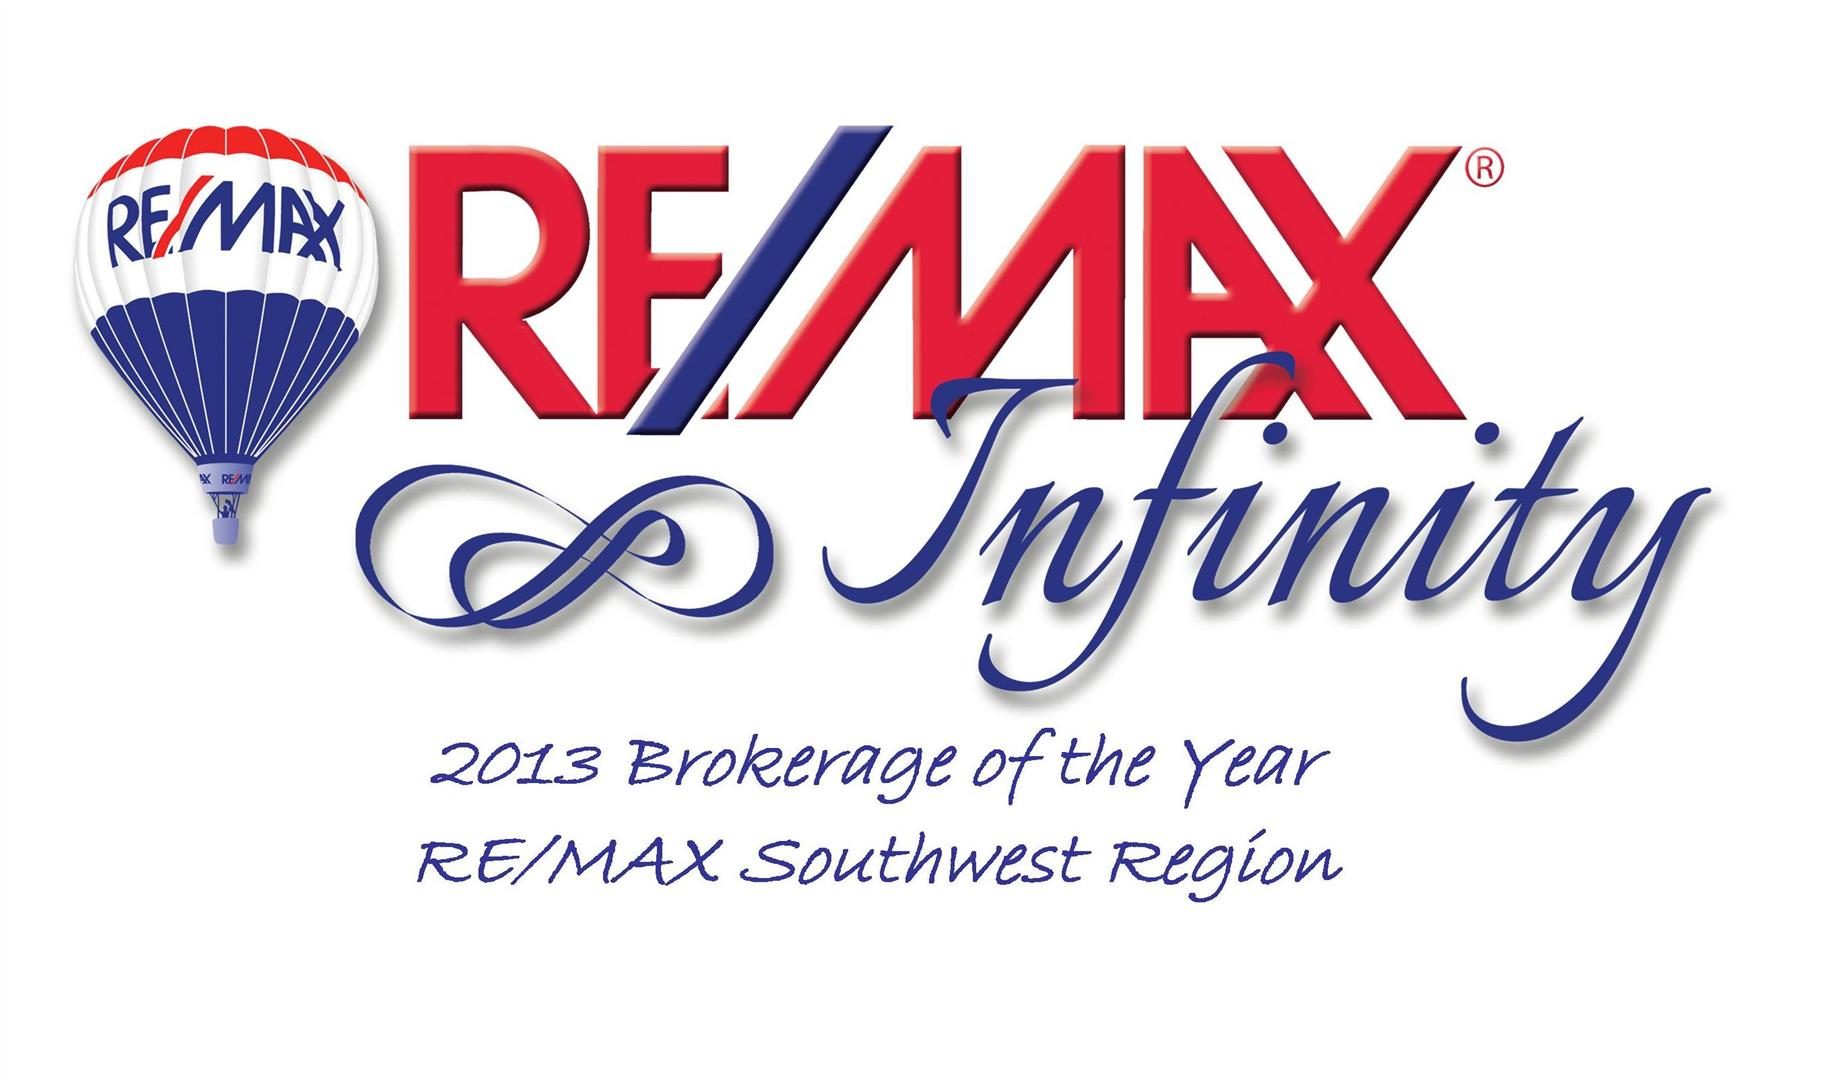 RE/MAX INFINITY REALTY